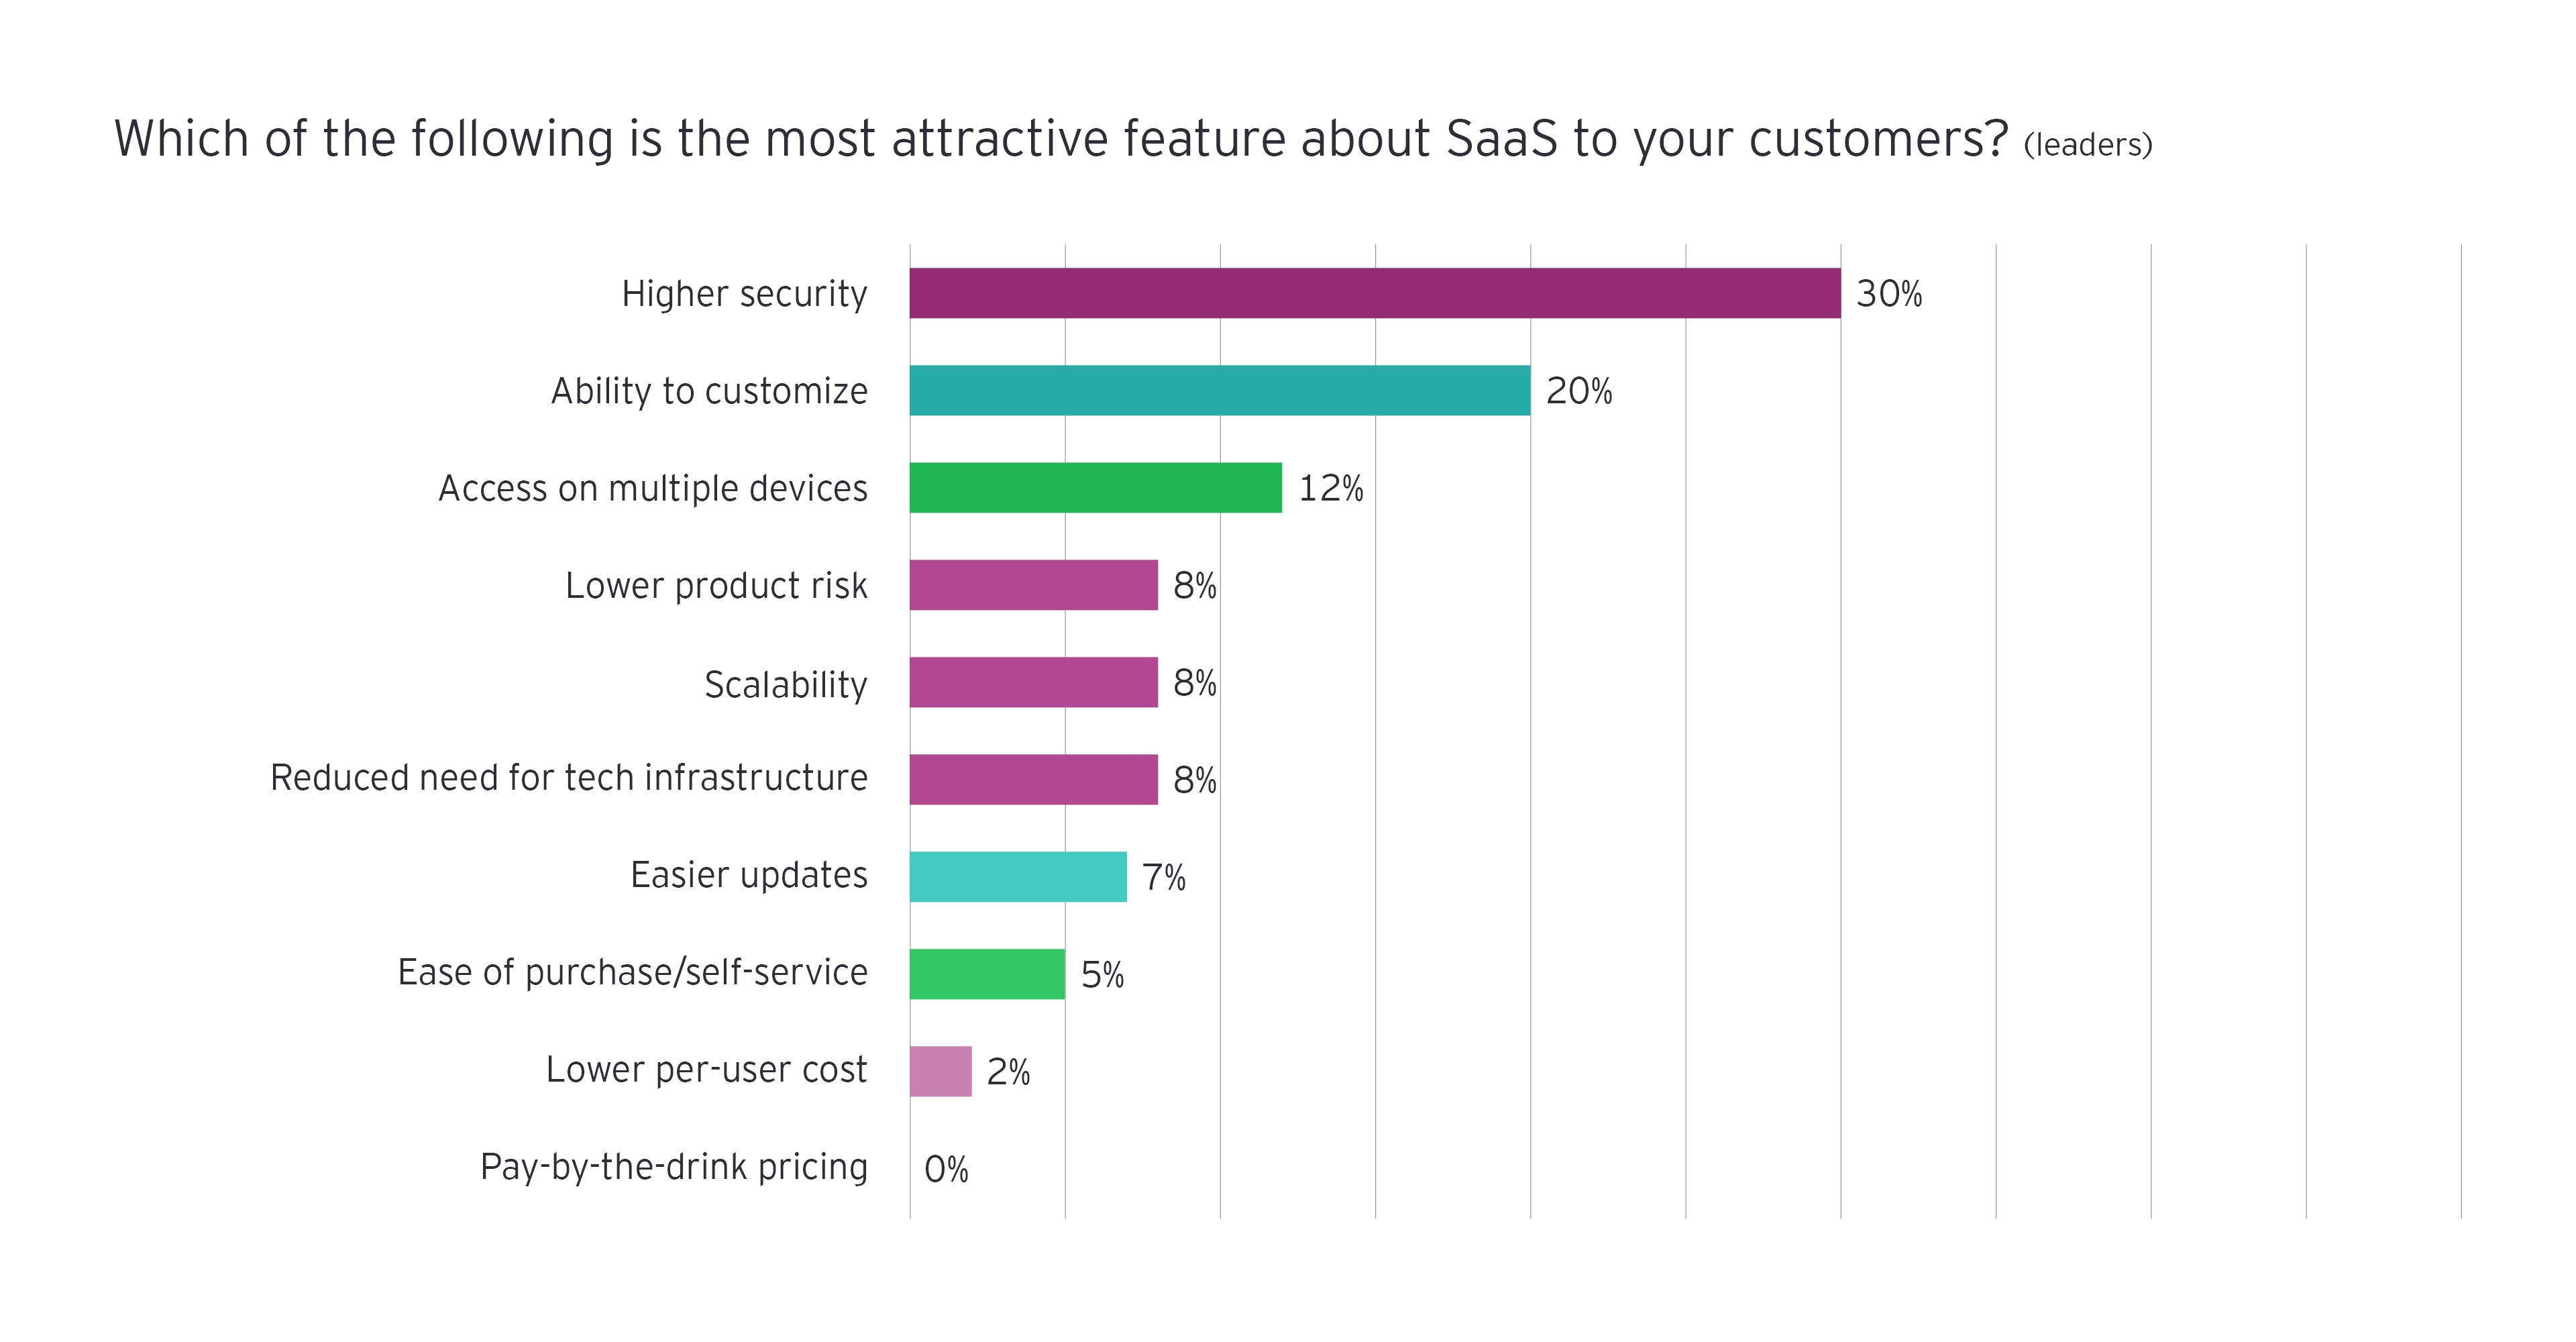 Which of the following is most attractive feature SaaS